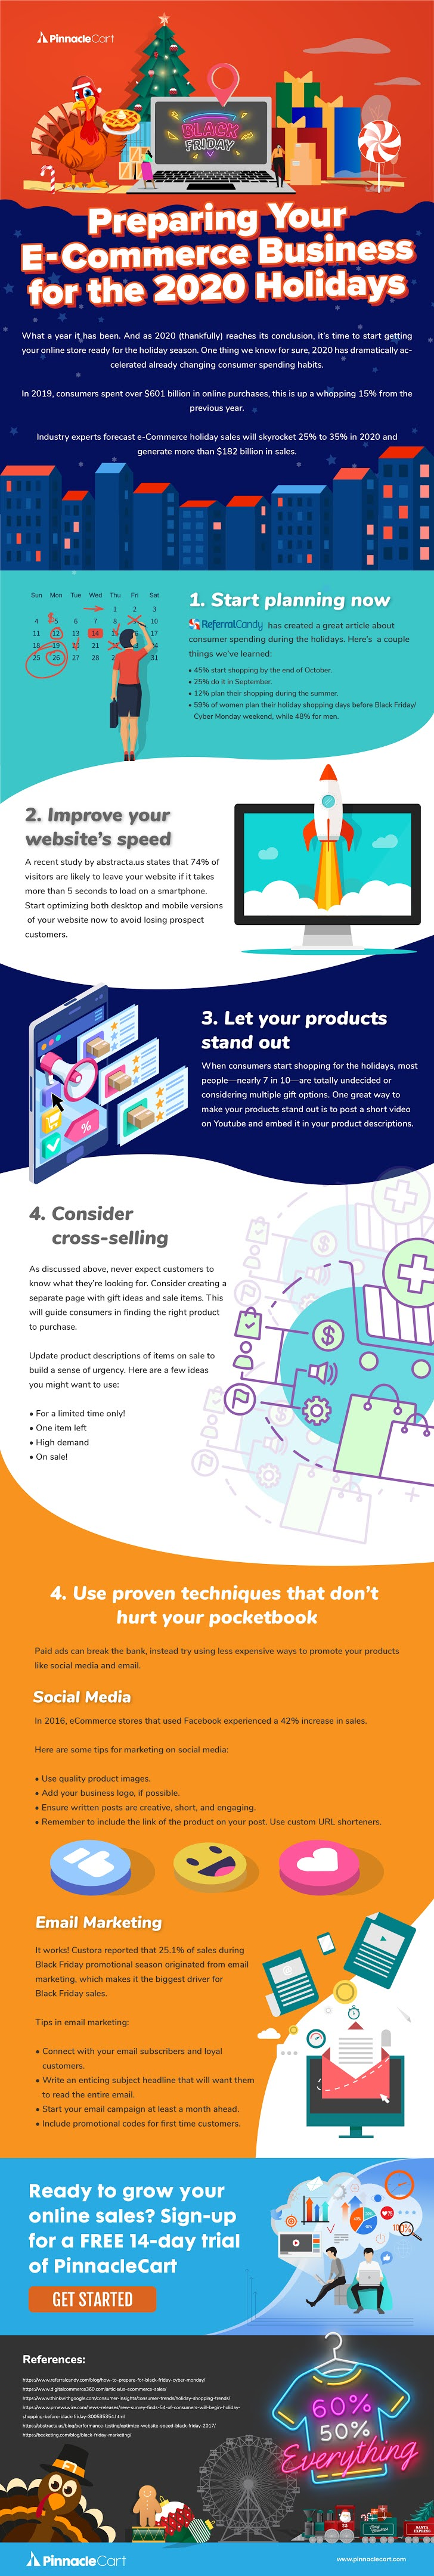 Preparing Your E-Commerce Business for the 2020 Holidays #infographic #Holidays #eCommerce #E-Commerce Business #Business